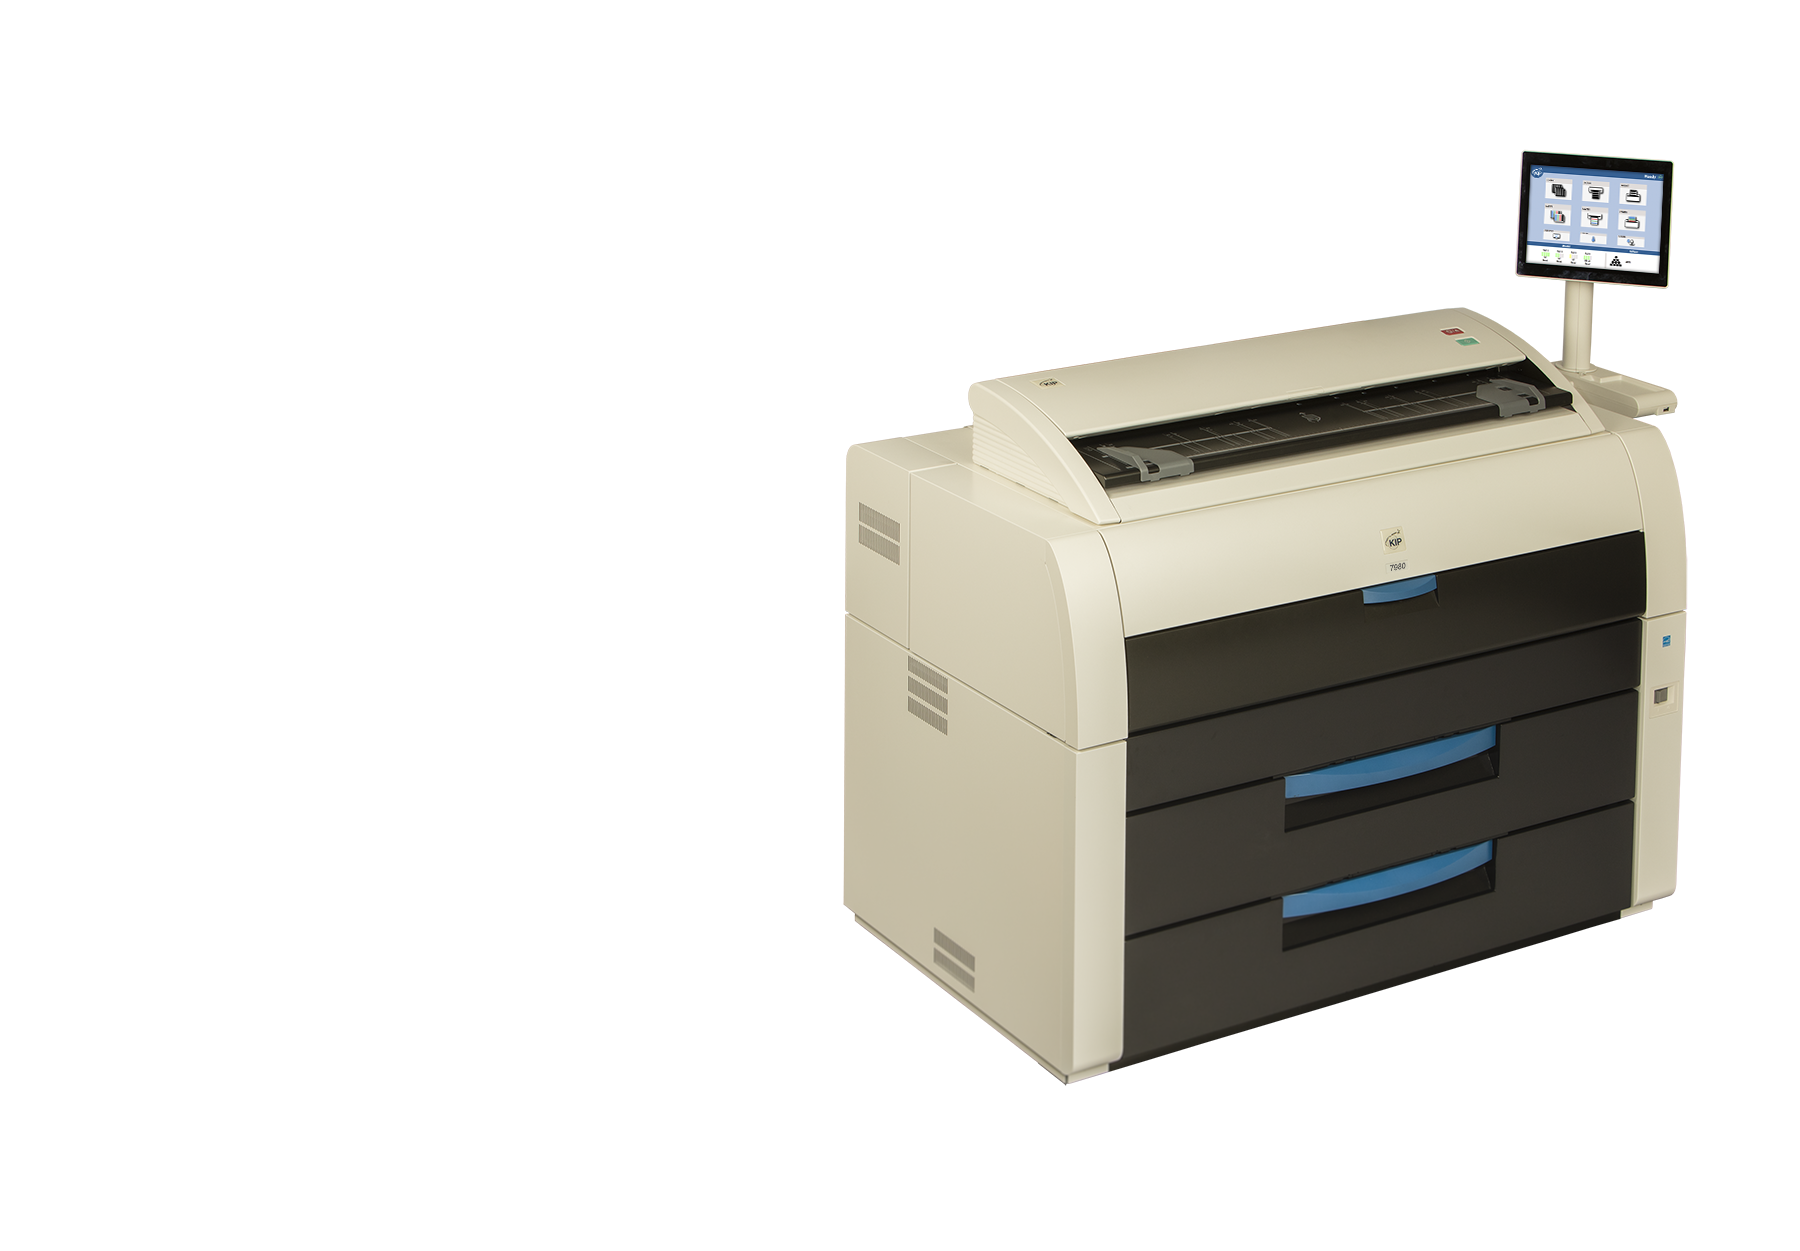 KIP 7980 professional printer